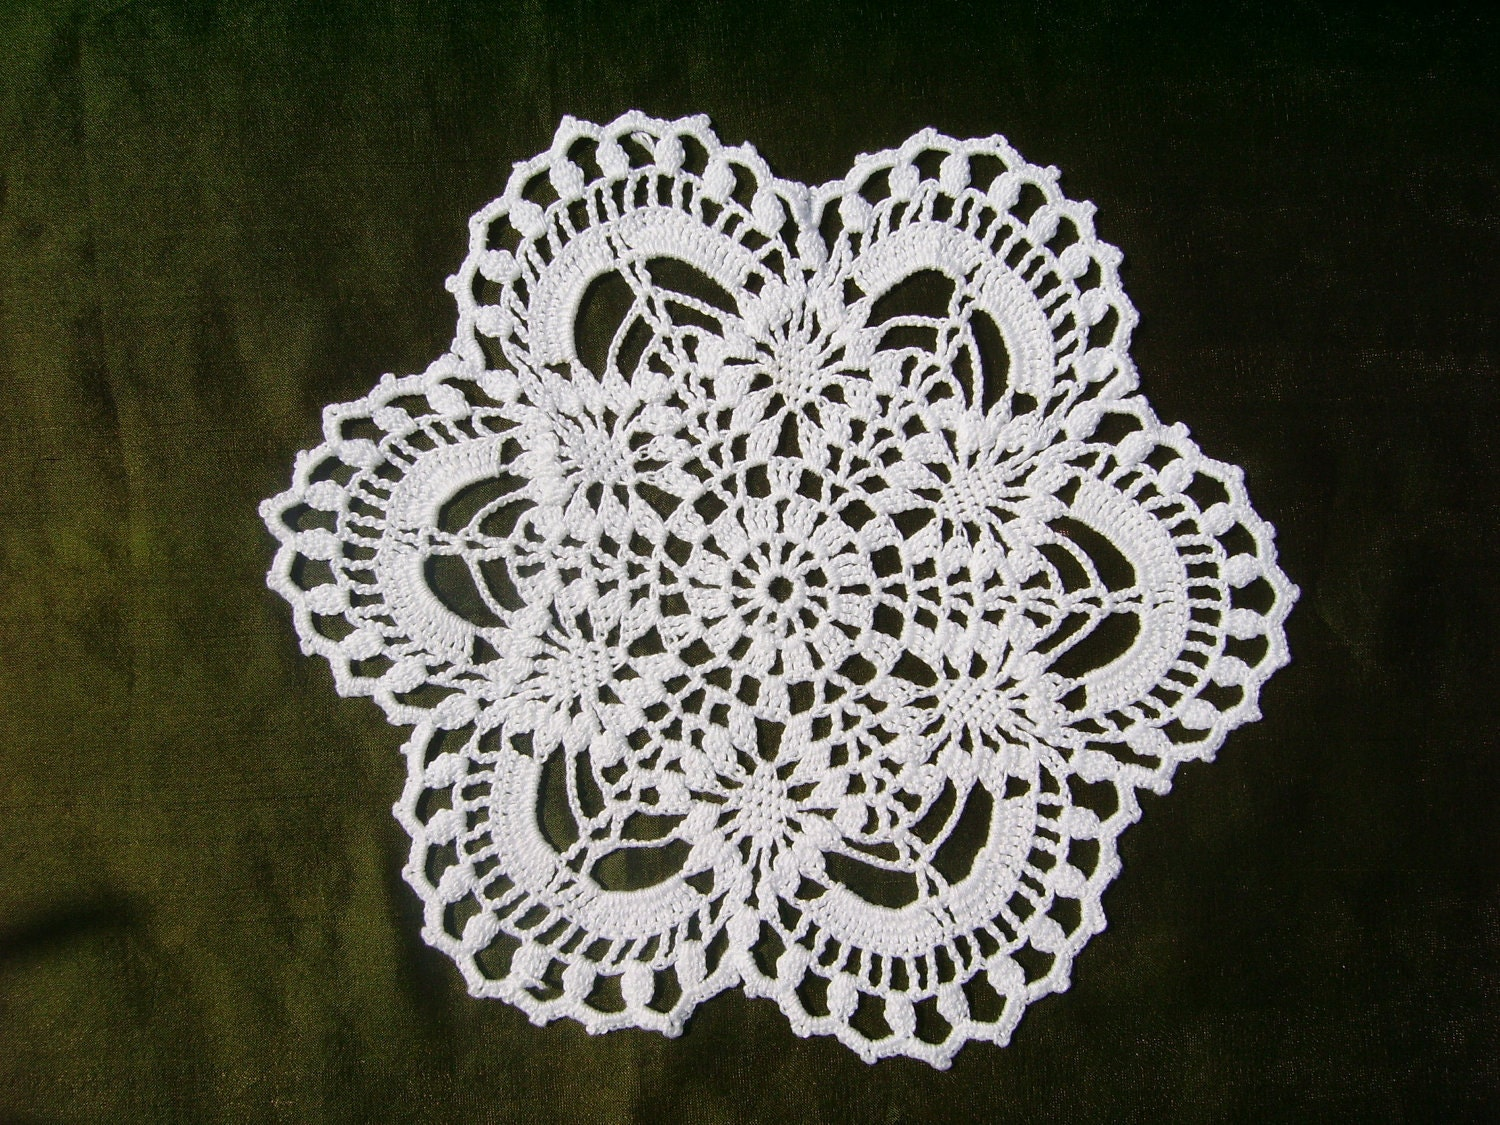 Crochet Doilies : Small crochet doily white doilies round 9 inches by kroshetmania